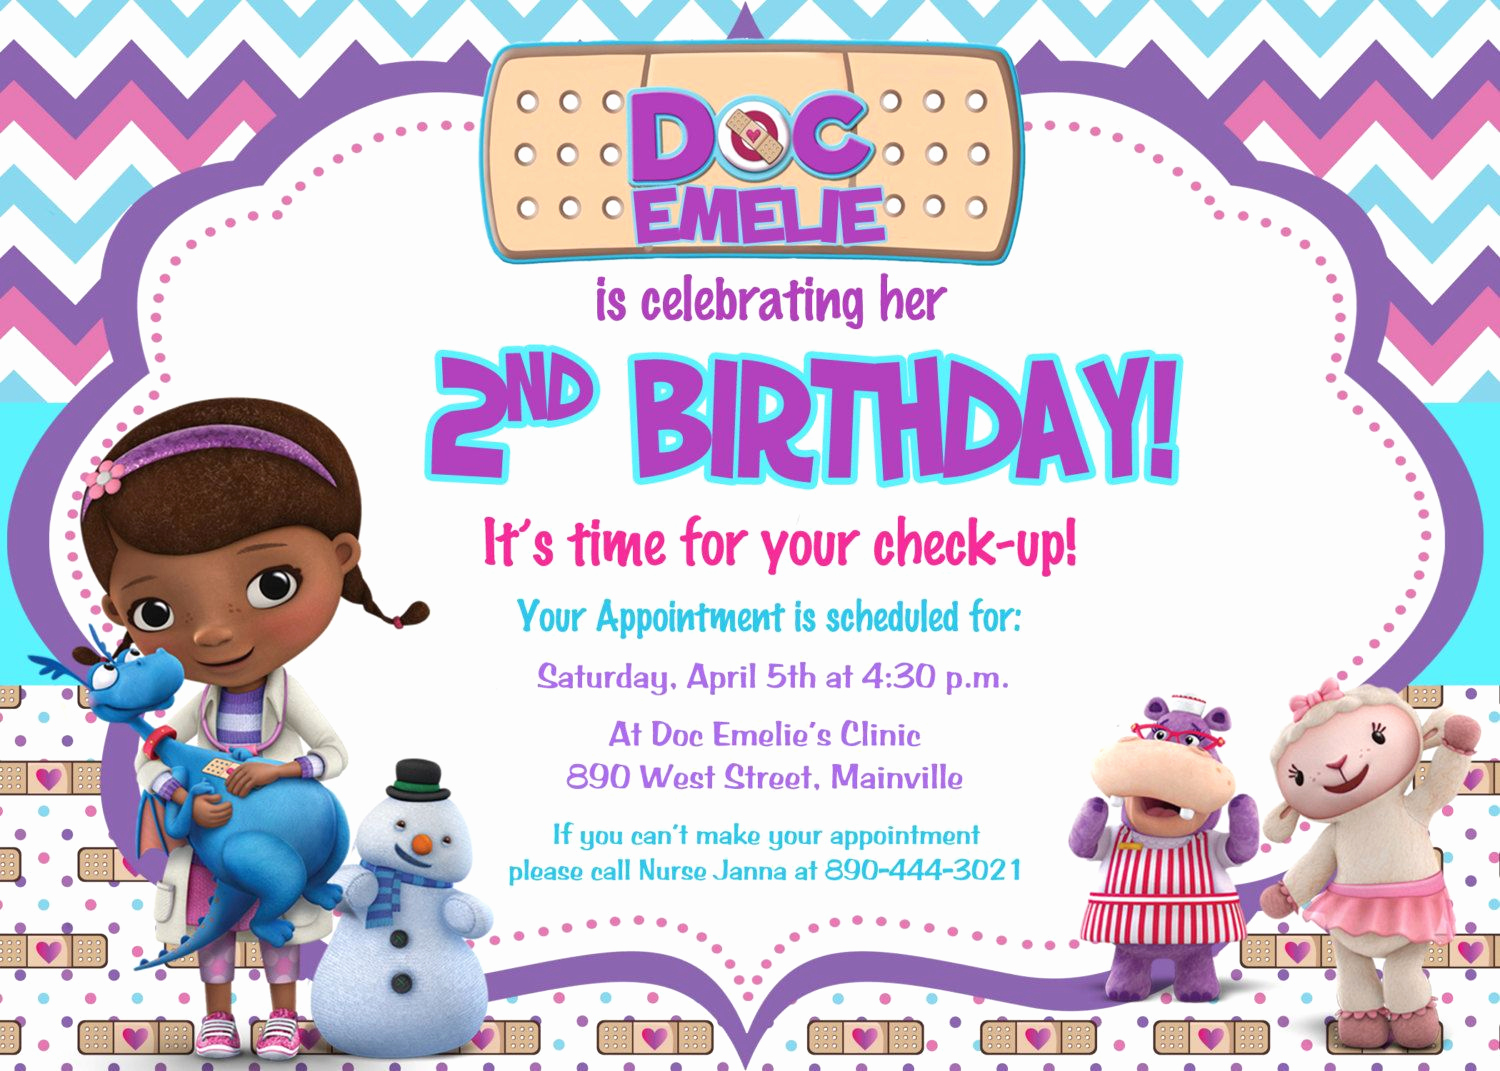 Doc Mcstuffins Birthday Invitation Template Elegant Doc Mcstuffins Birthday Party Invitation Digital File by